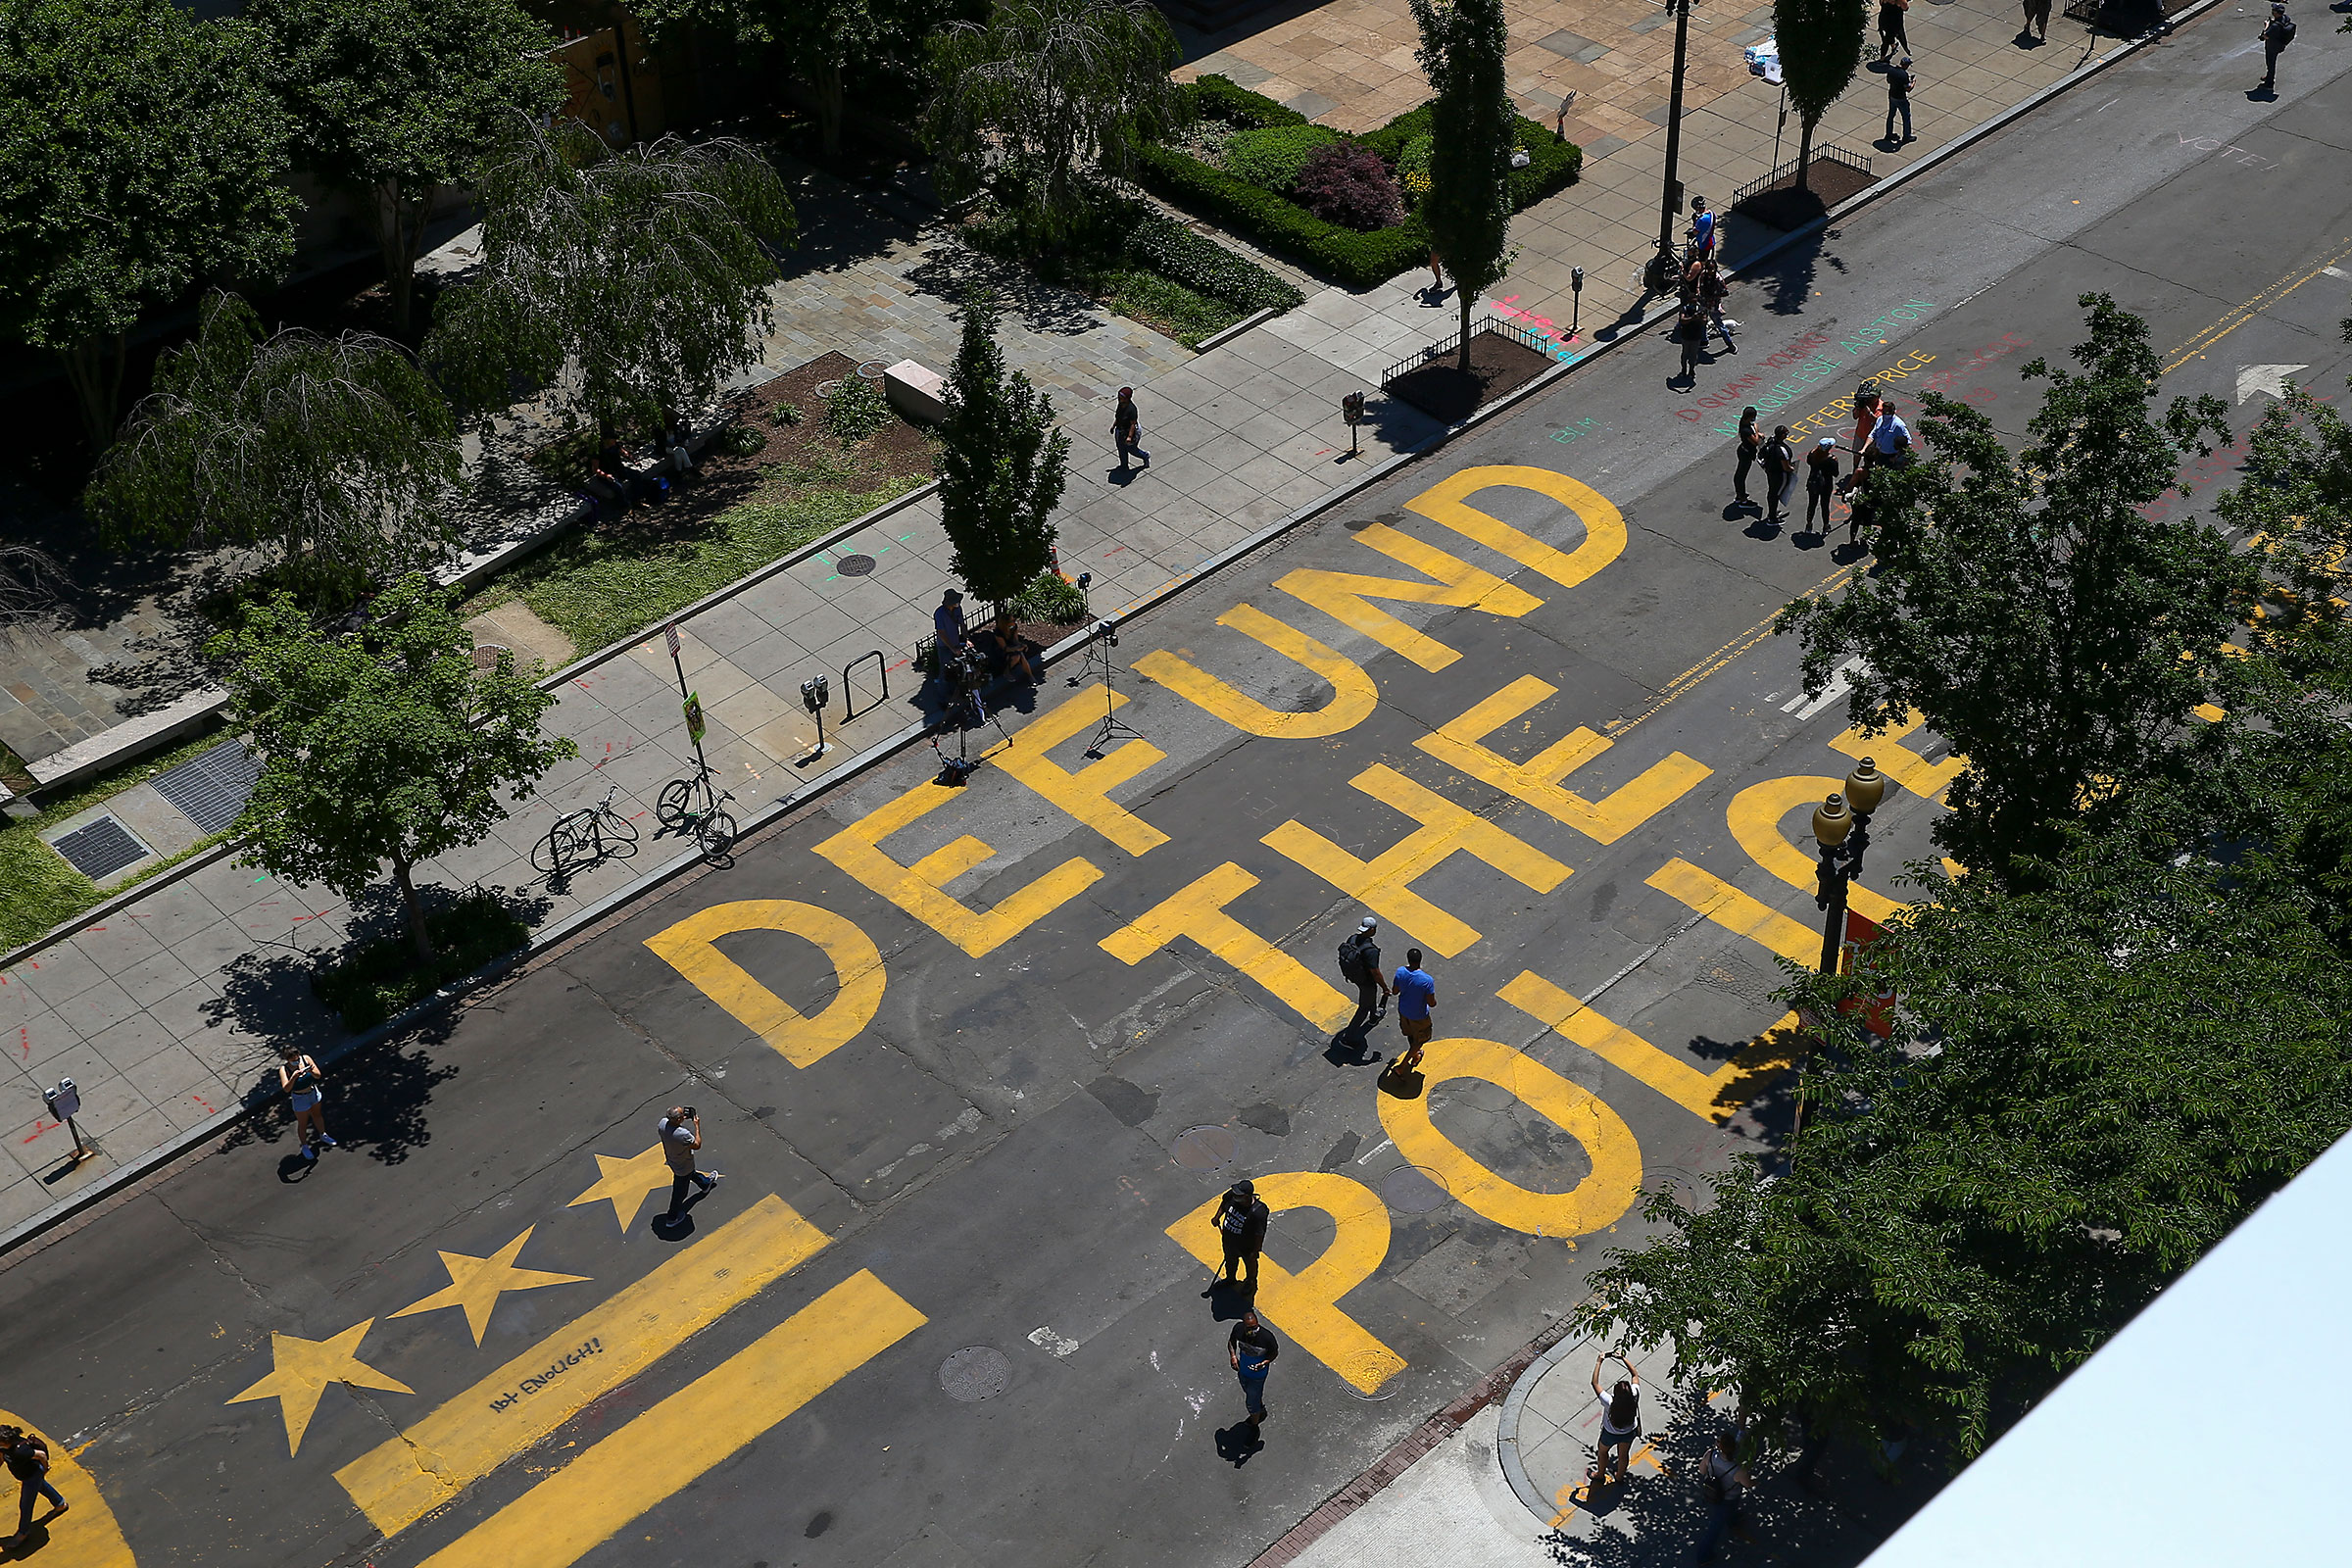 """Defund The Police"" was painted on the street near the White House in Washington, D.C."